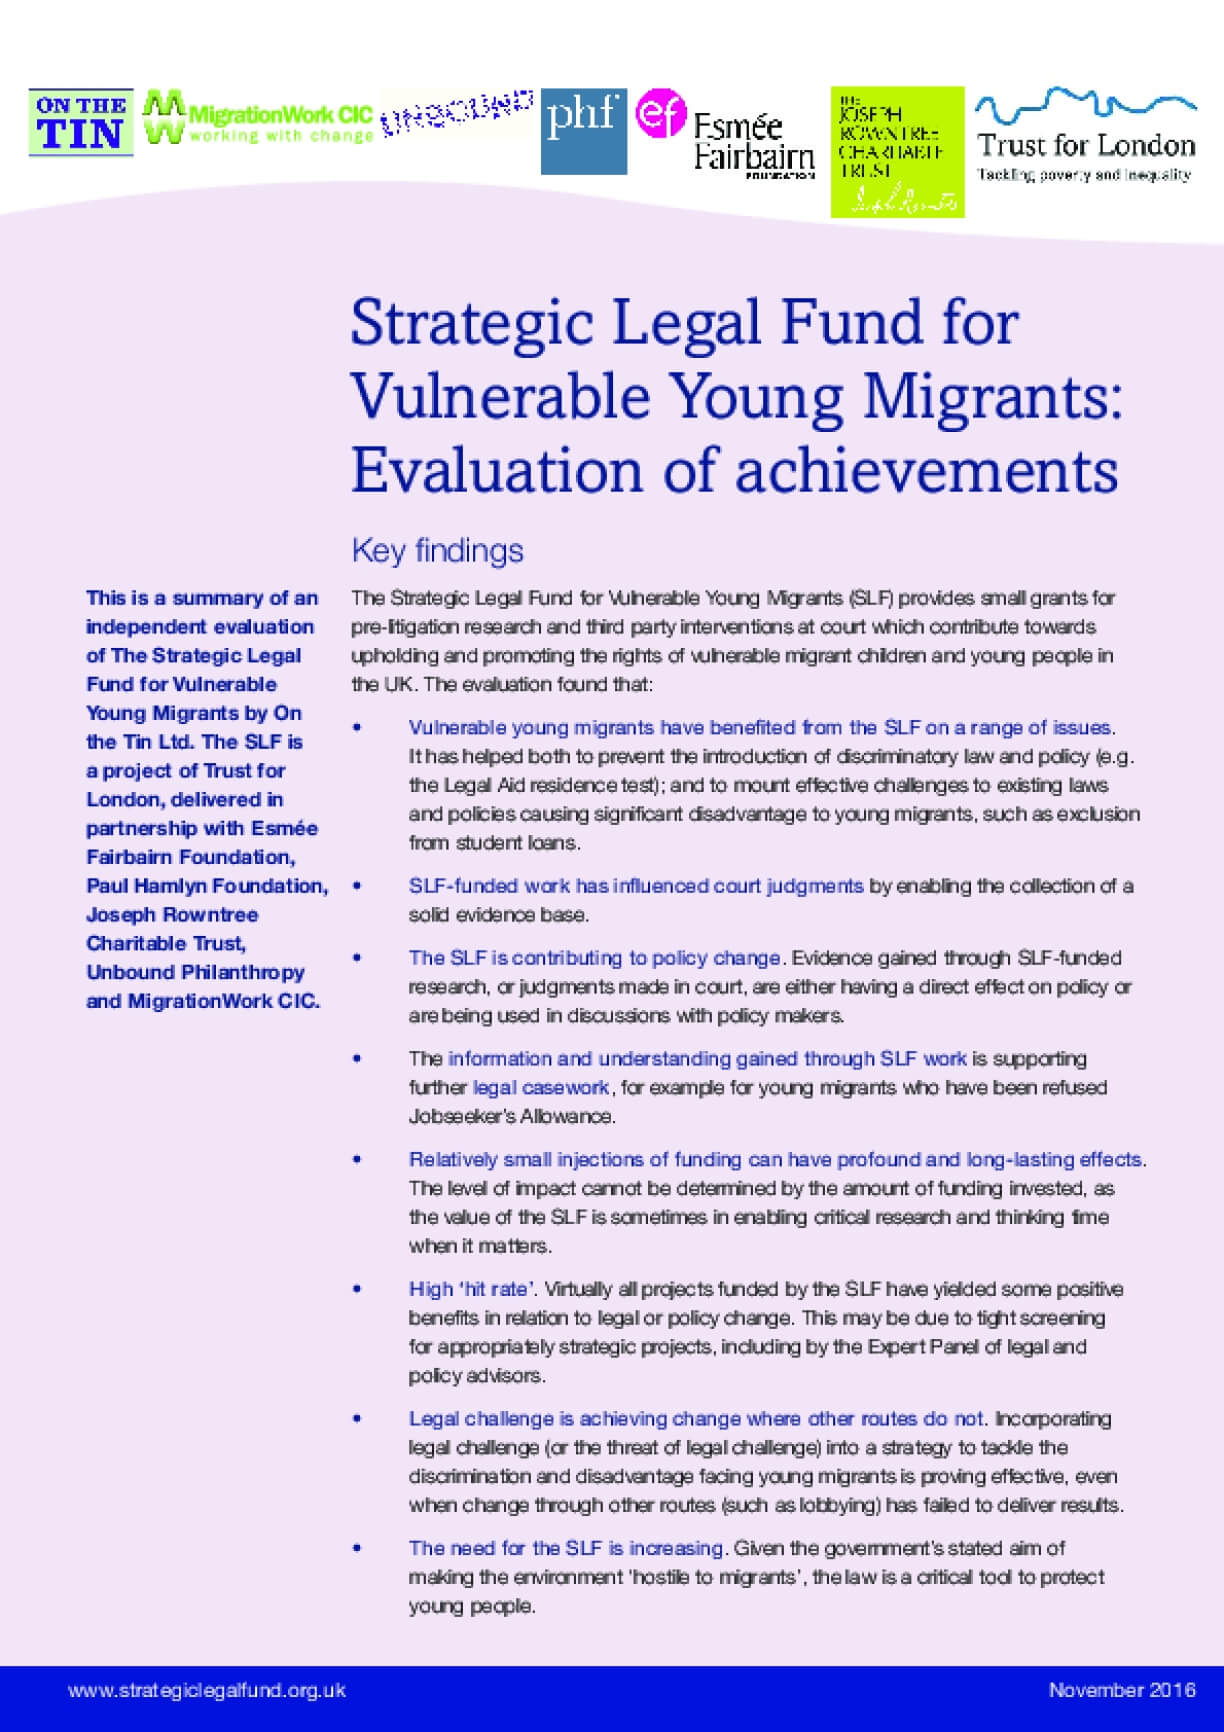 Strategic Legal Fund for Vulnerable Young Migrants: Evaluation of Achievements